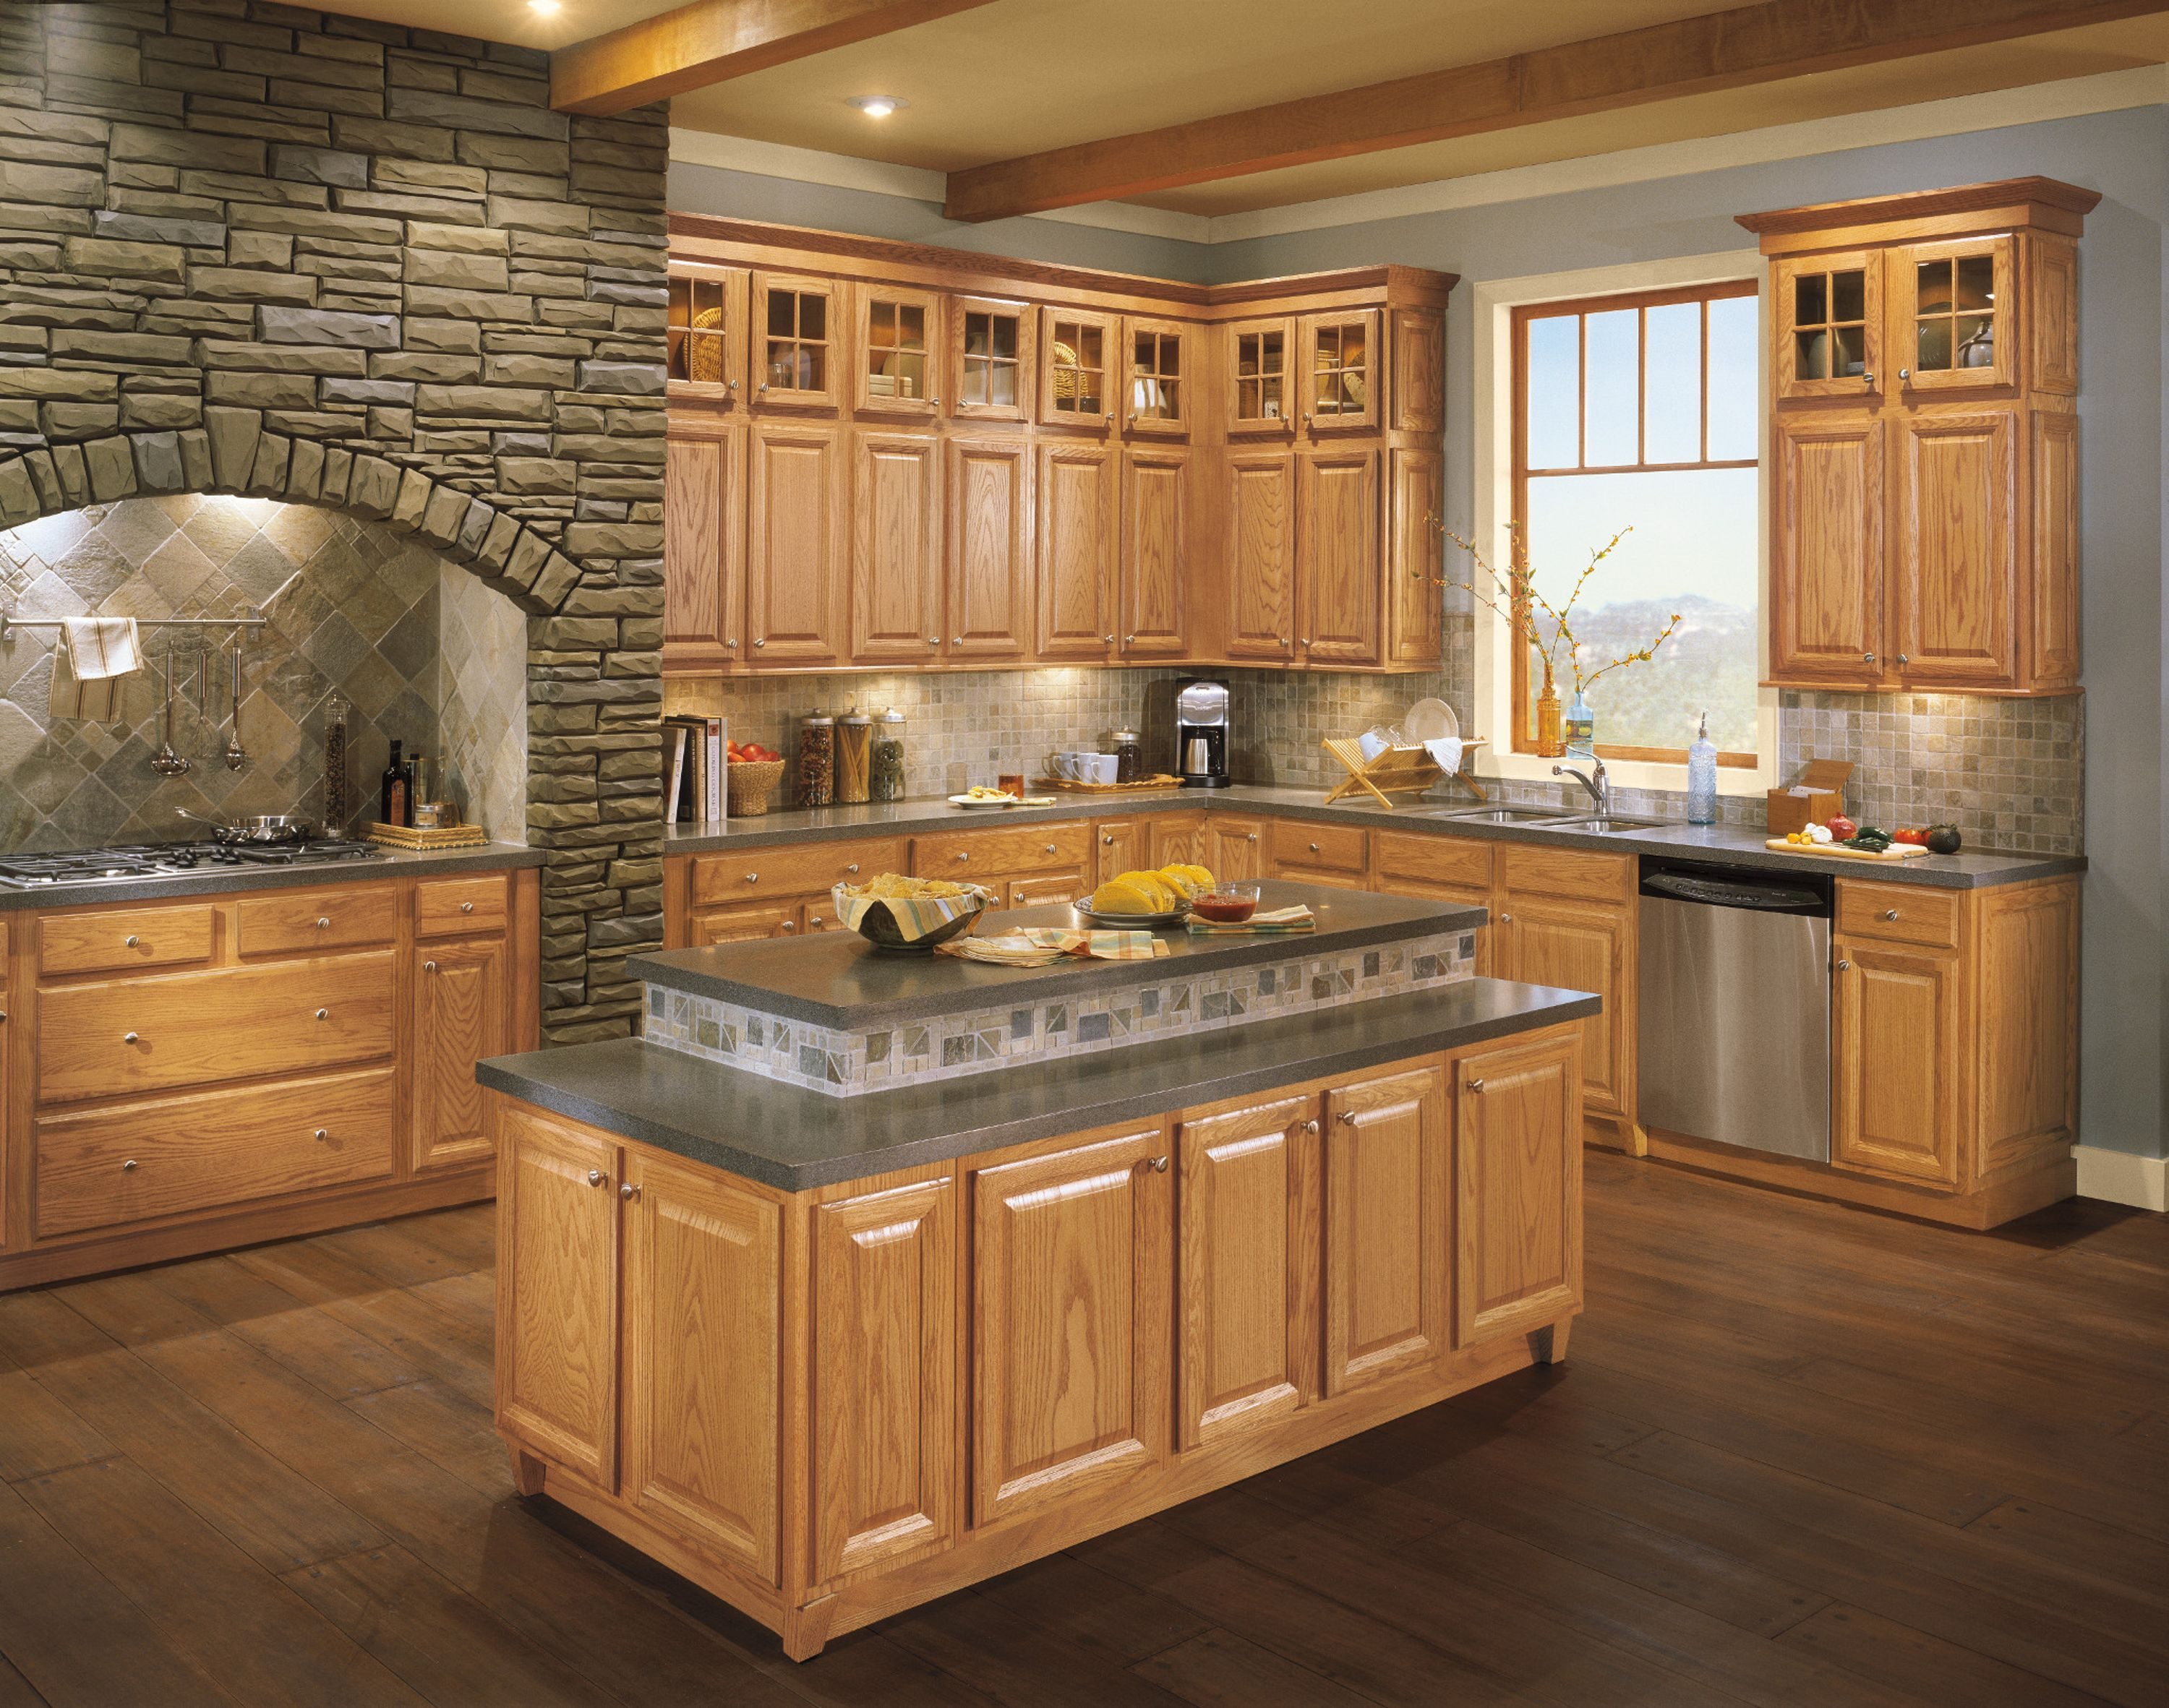 Bluemont Shenandoah Cabinetry Kitchen Flooring Honey